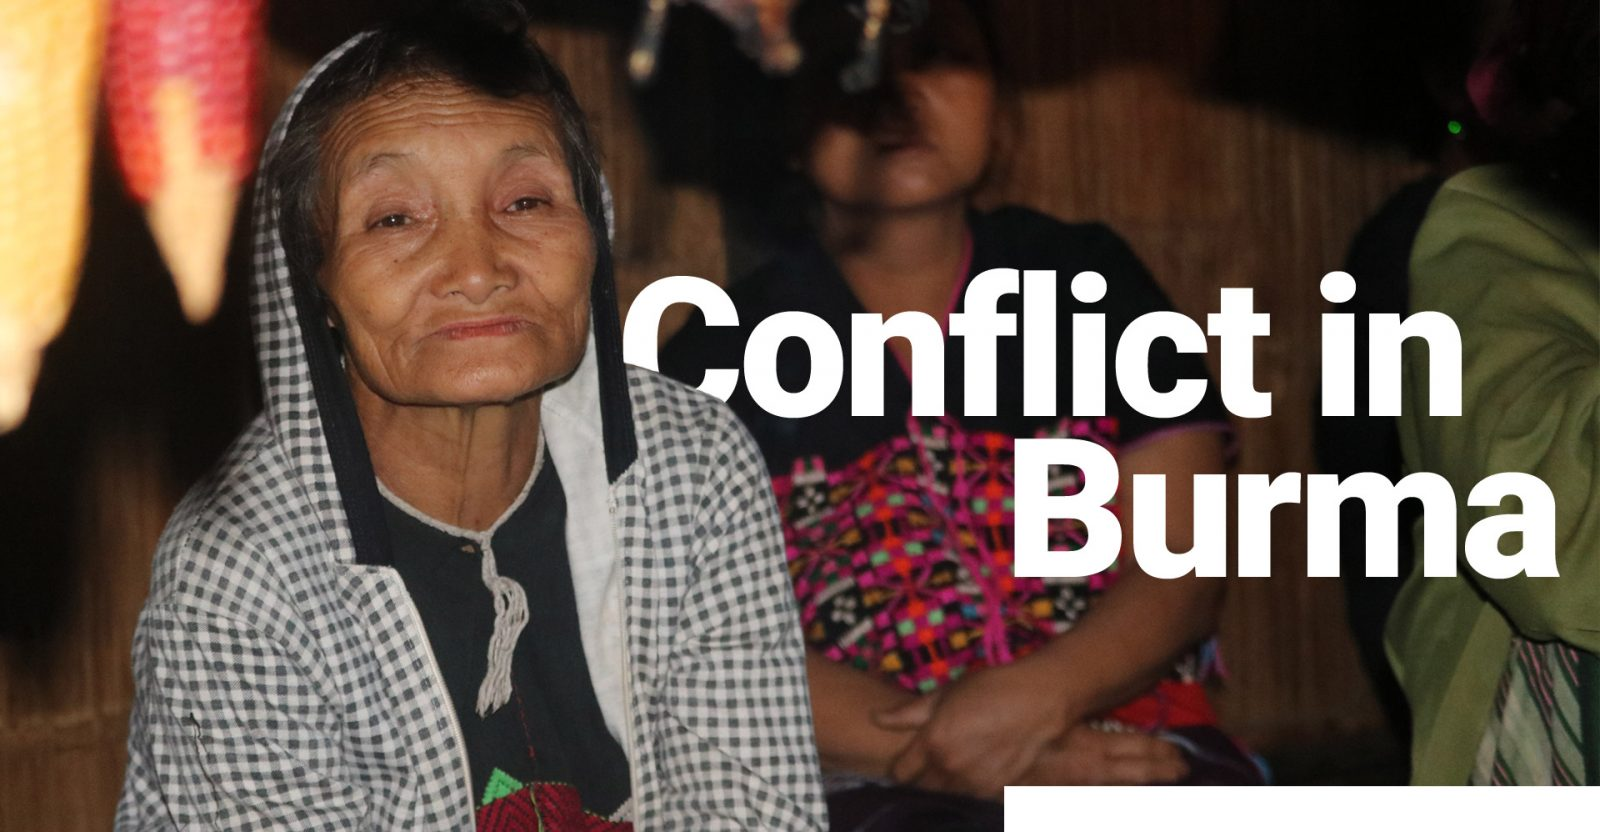 karen-national-team-full-image-header-desktop-conflict-in-burma-new